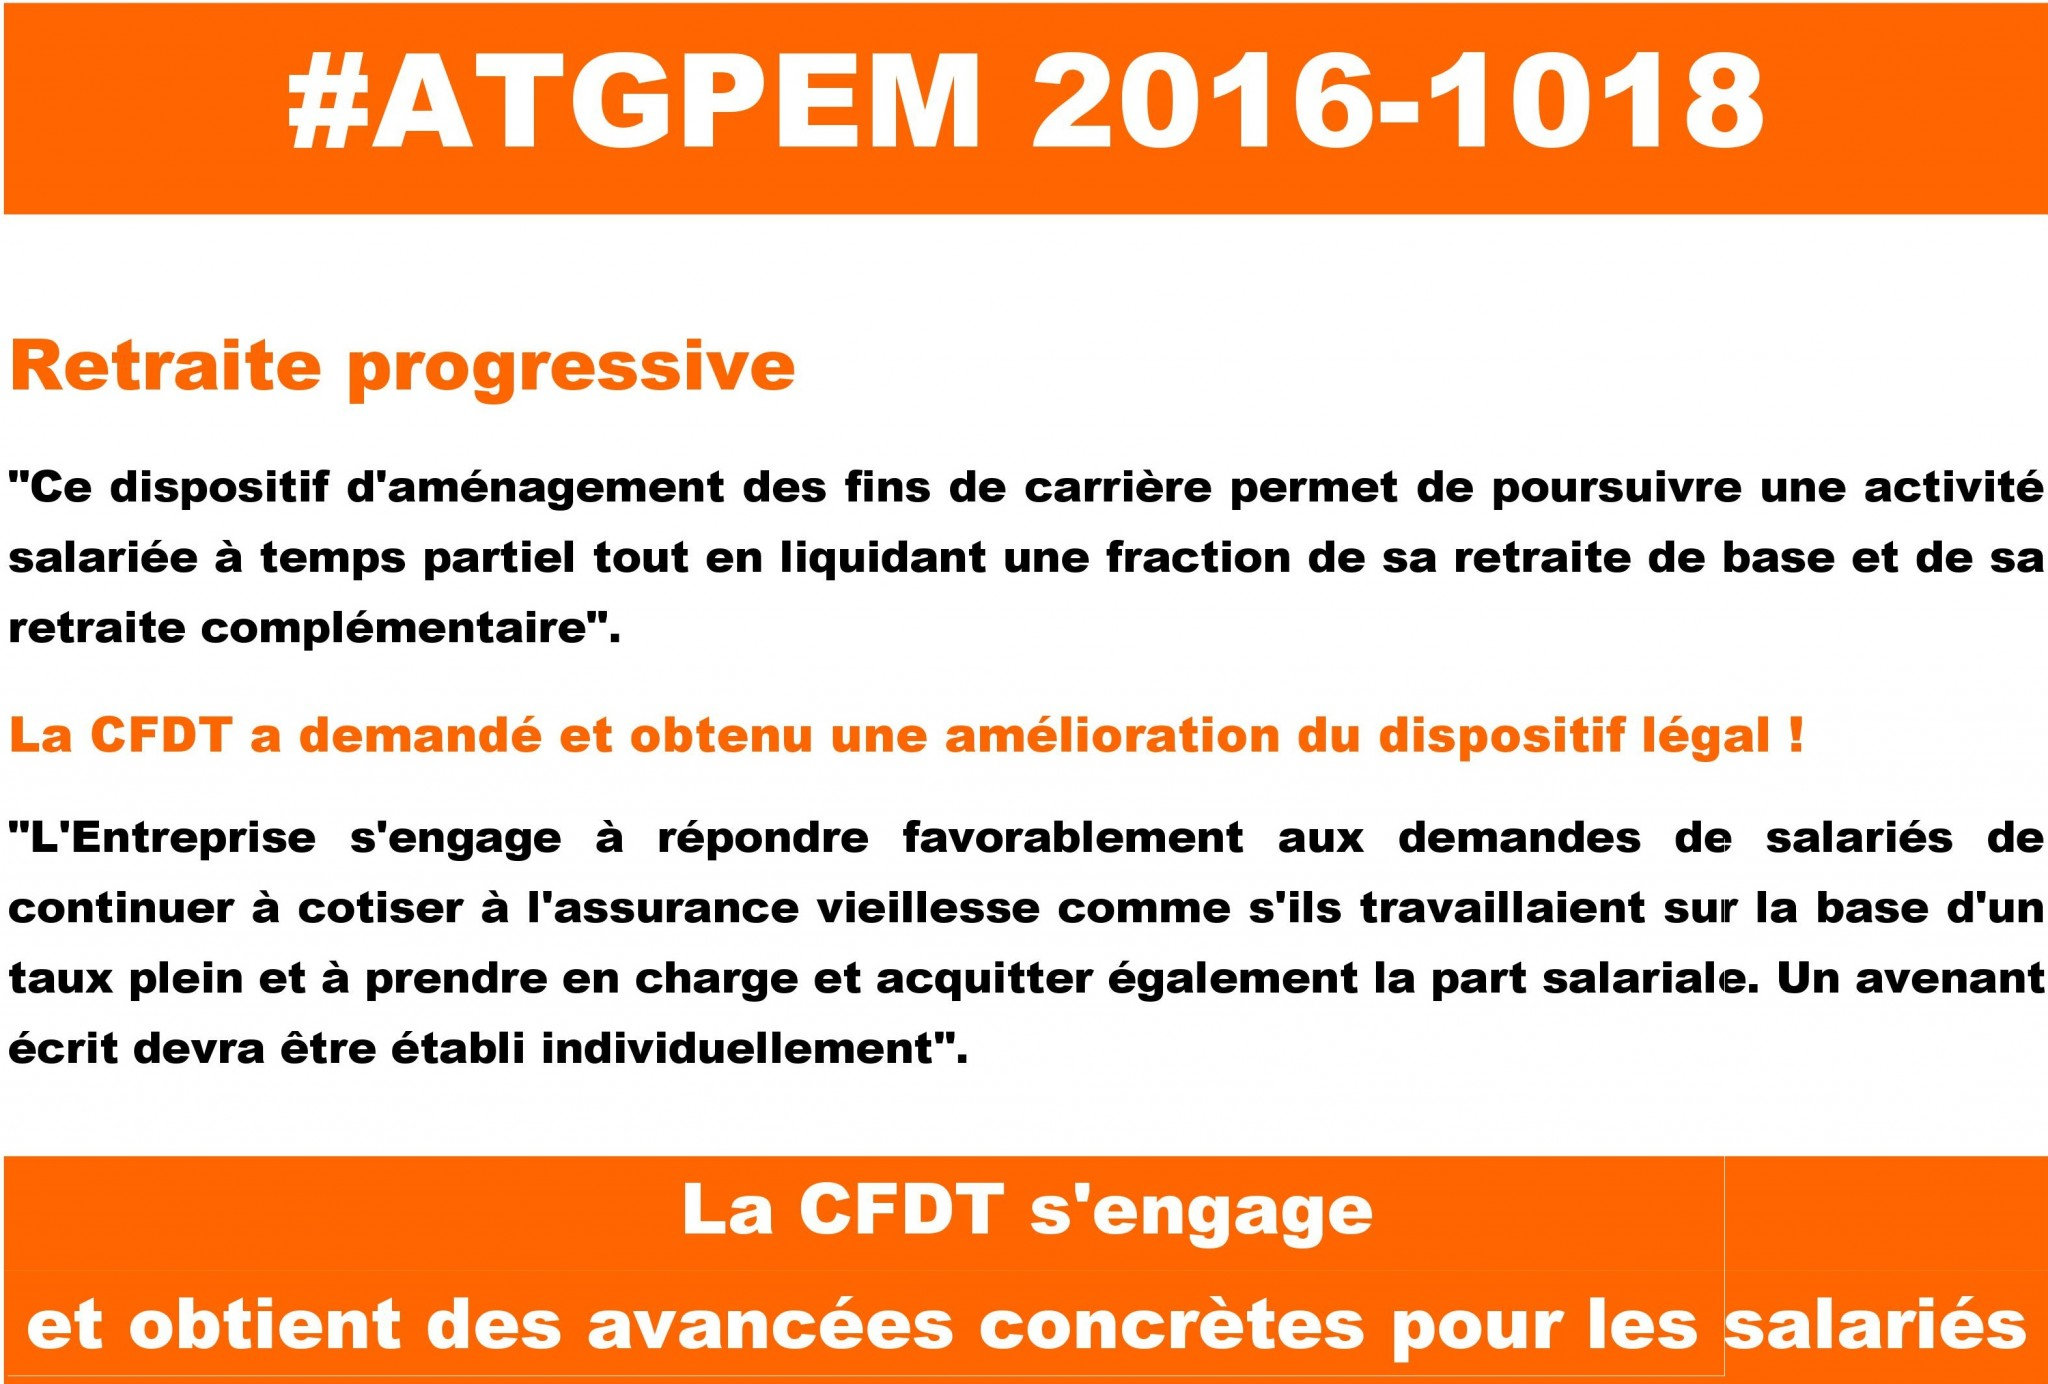 communication ATGPEM 2016 3